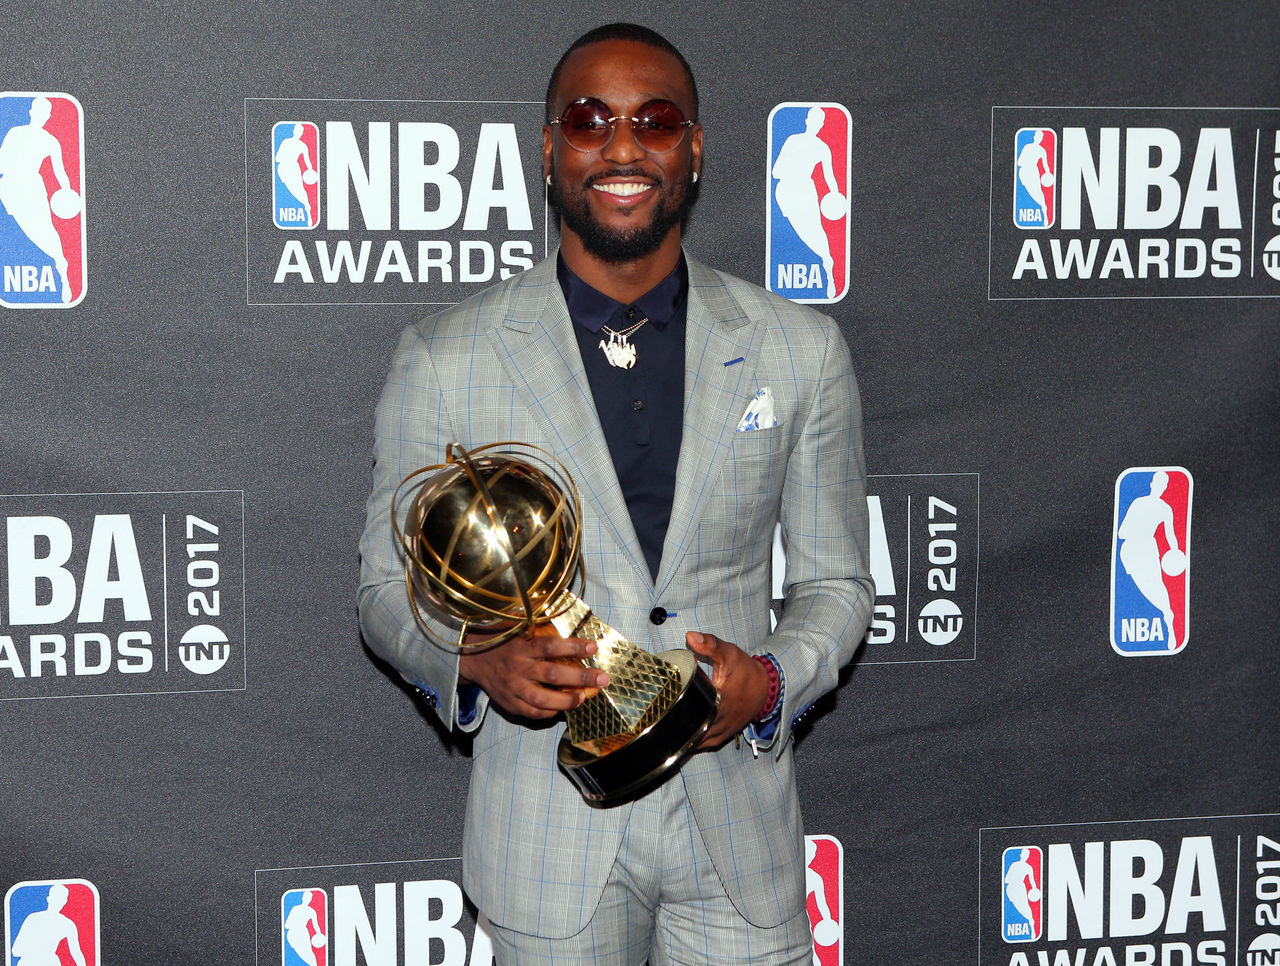 Cropped 2017 06 27t030233z 1787235318 nocid rtrmadp 3 nba awards show